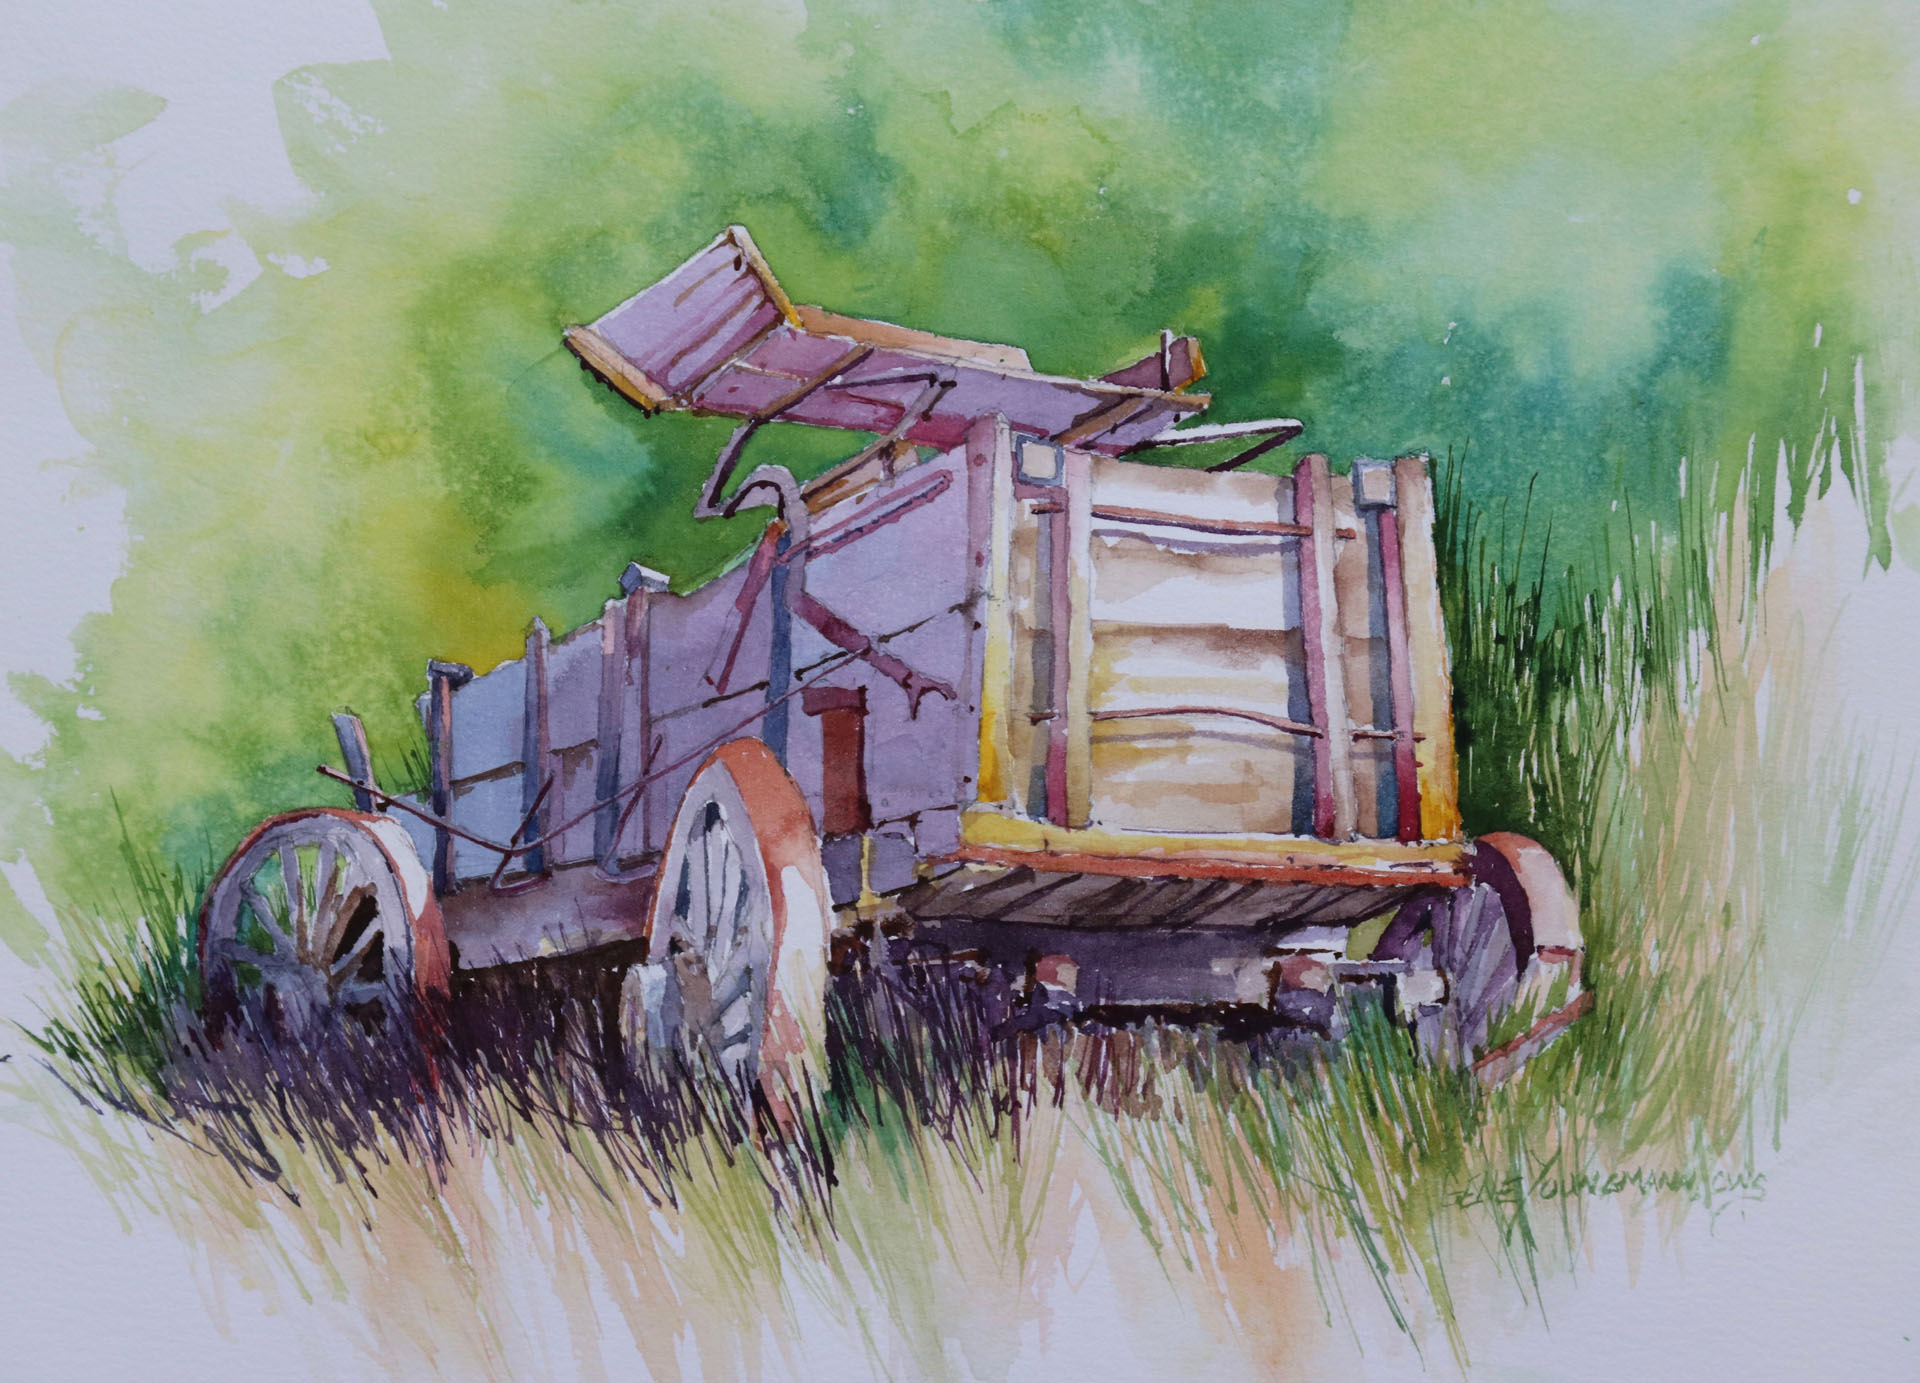 Painting #86 - Before Pickup Trucks